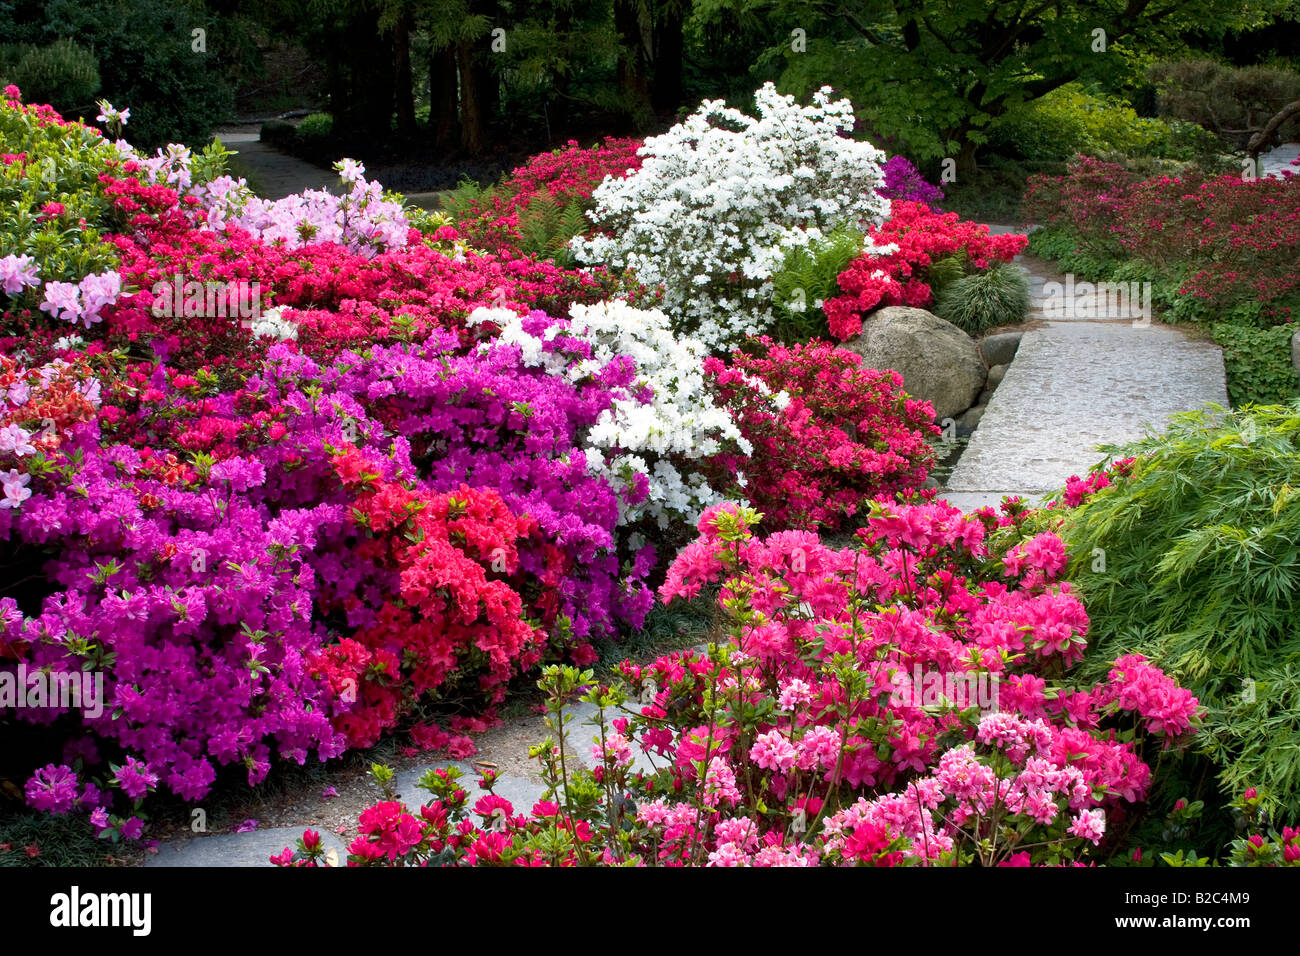 rhododendrons stockfotos rhododendrons bilder alamy. Black Bedroom Furniture Sets. Home Design Ideas